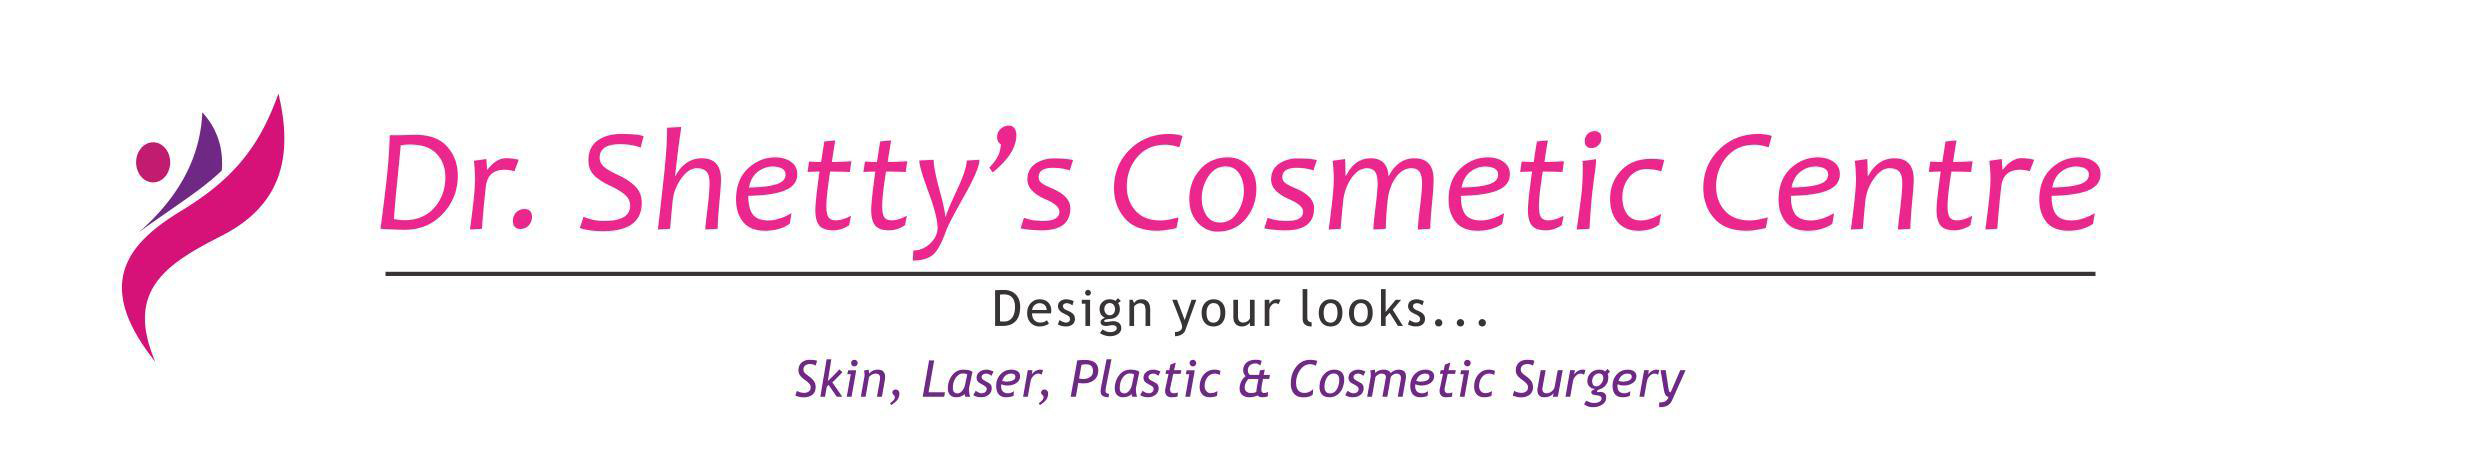 Dr. Shetty's Cosmetic Centre, Bangalore